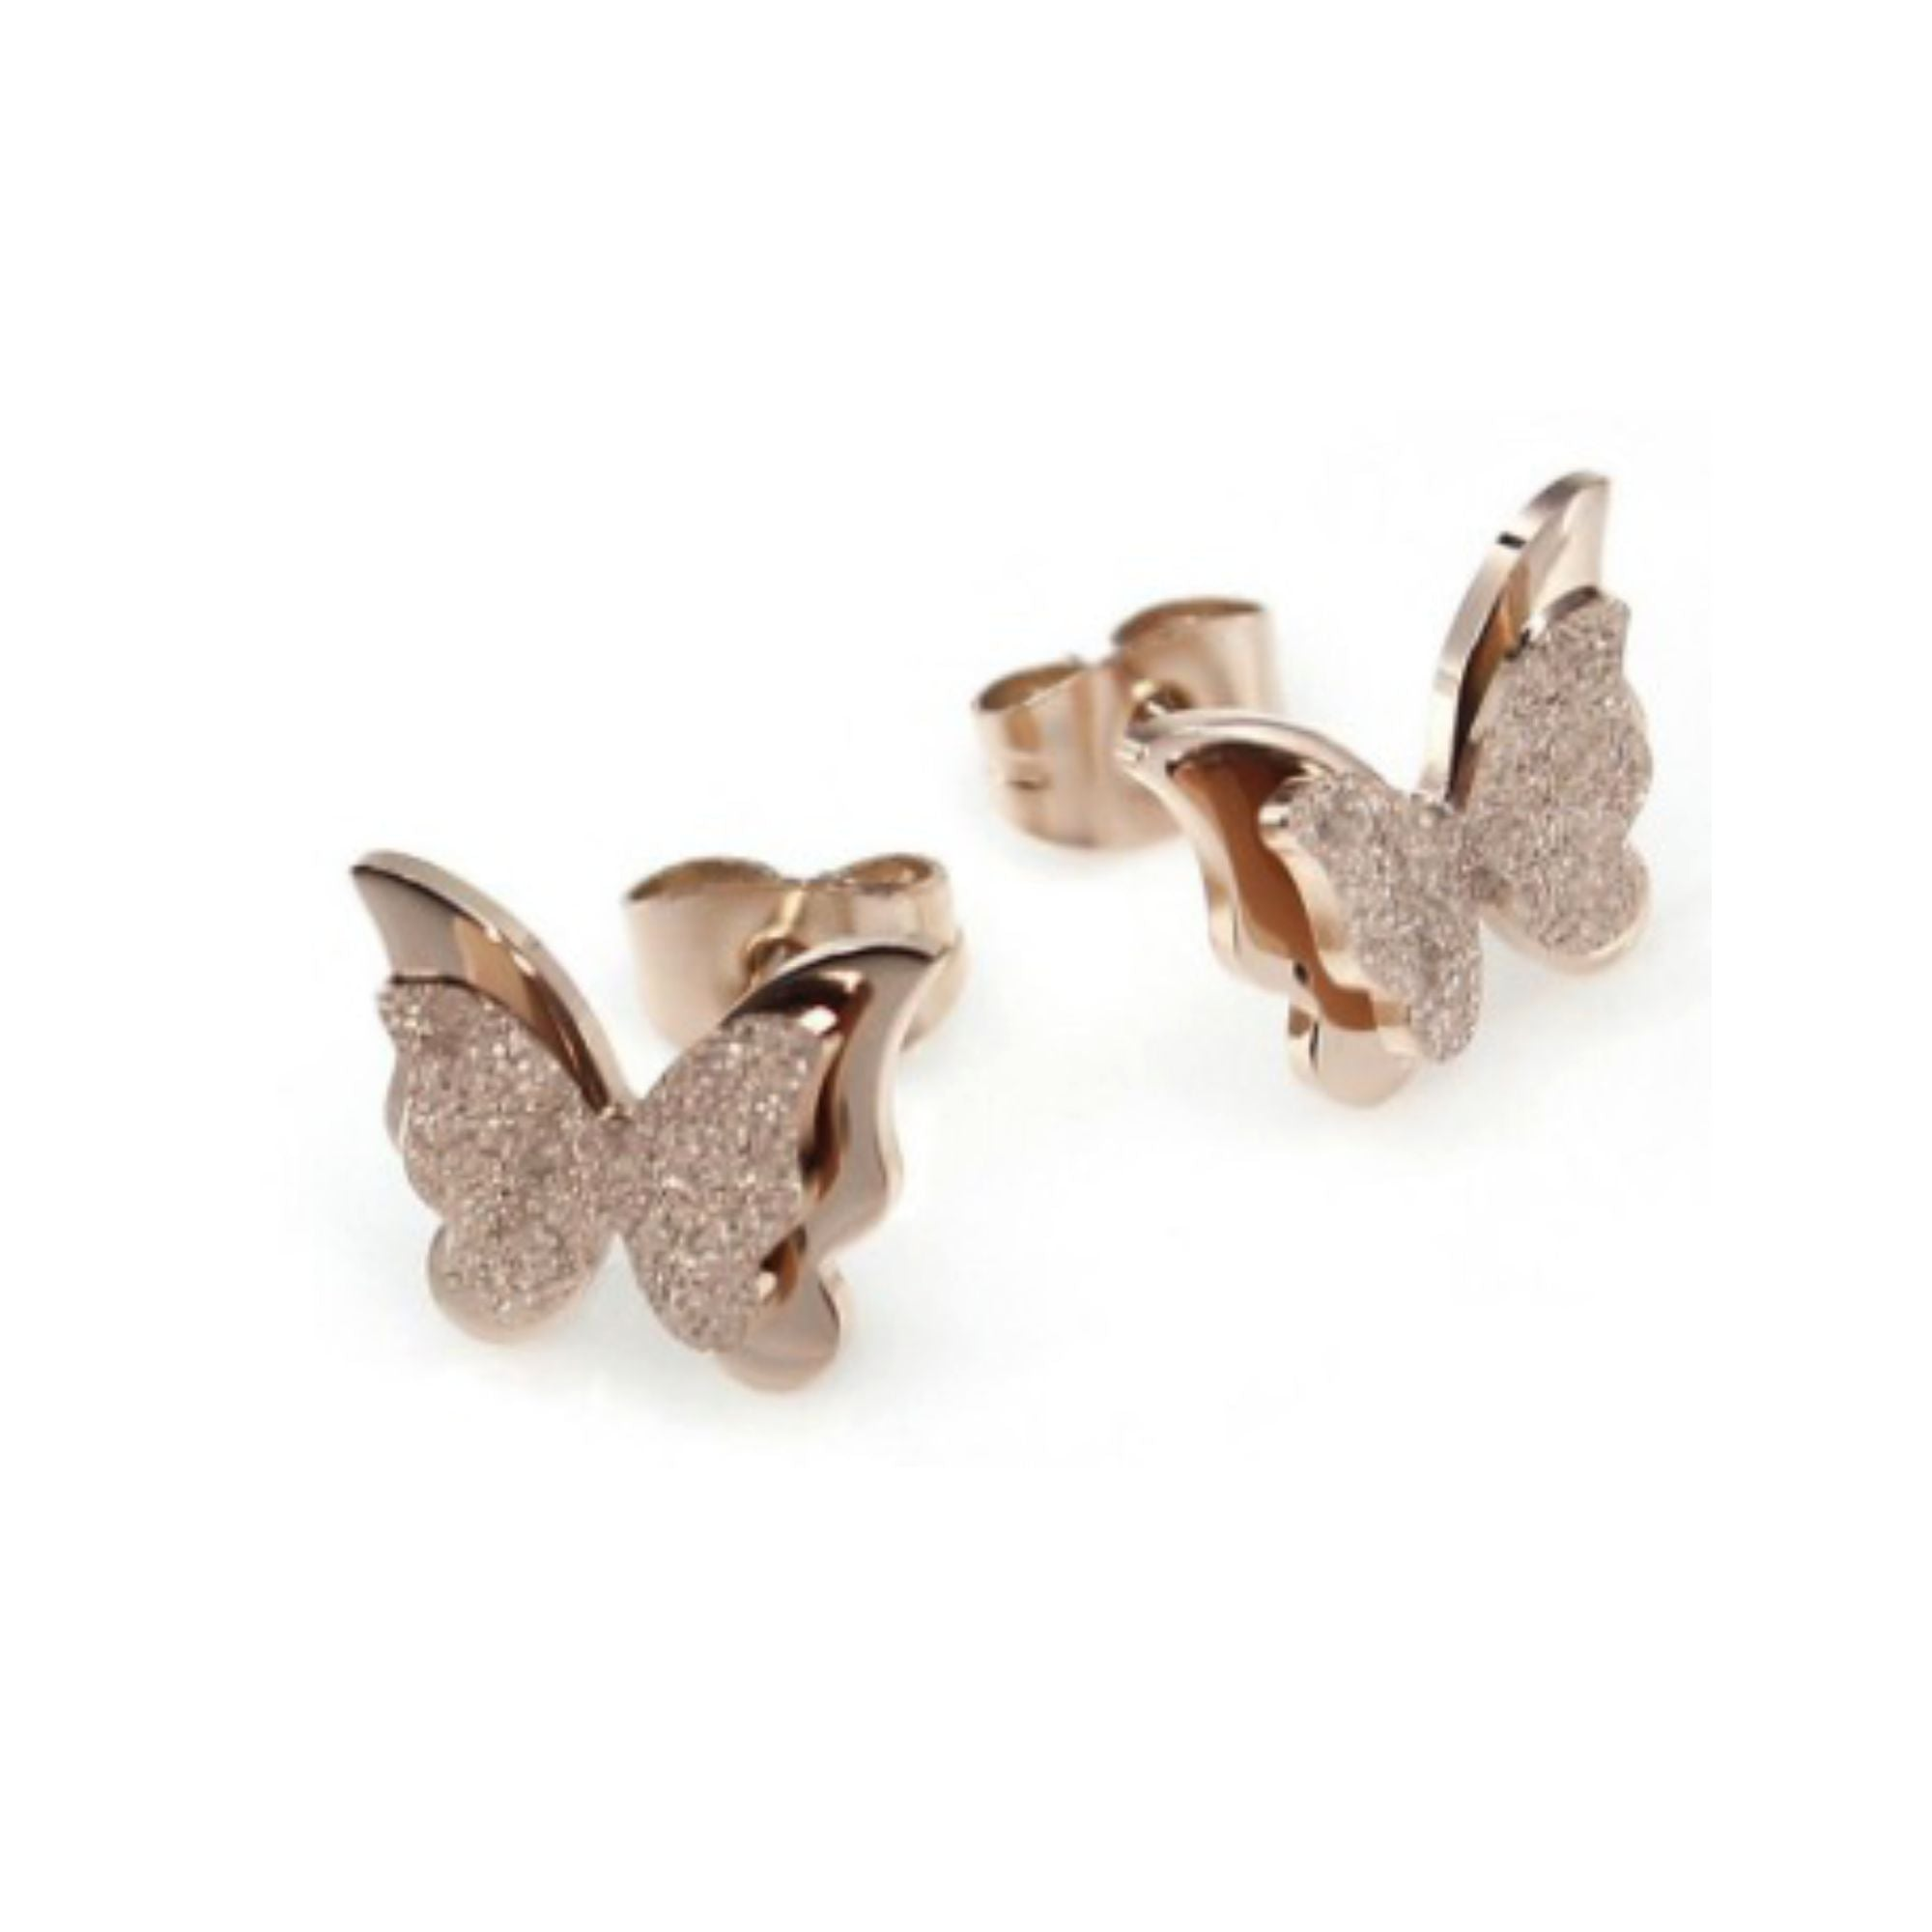 18K GP Rose Gold Titanium Stainless Steel Butterfly Stud Earrings